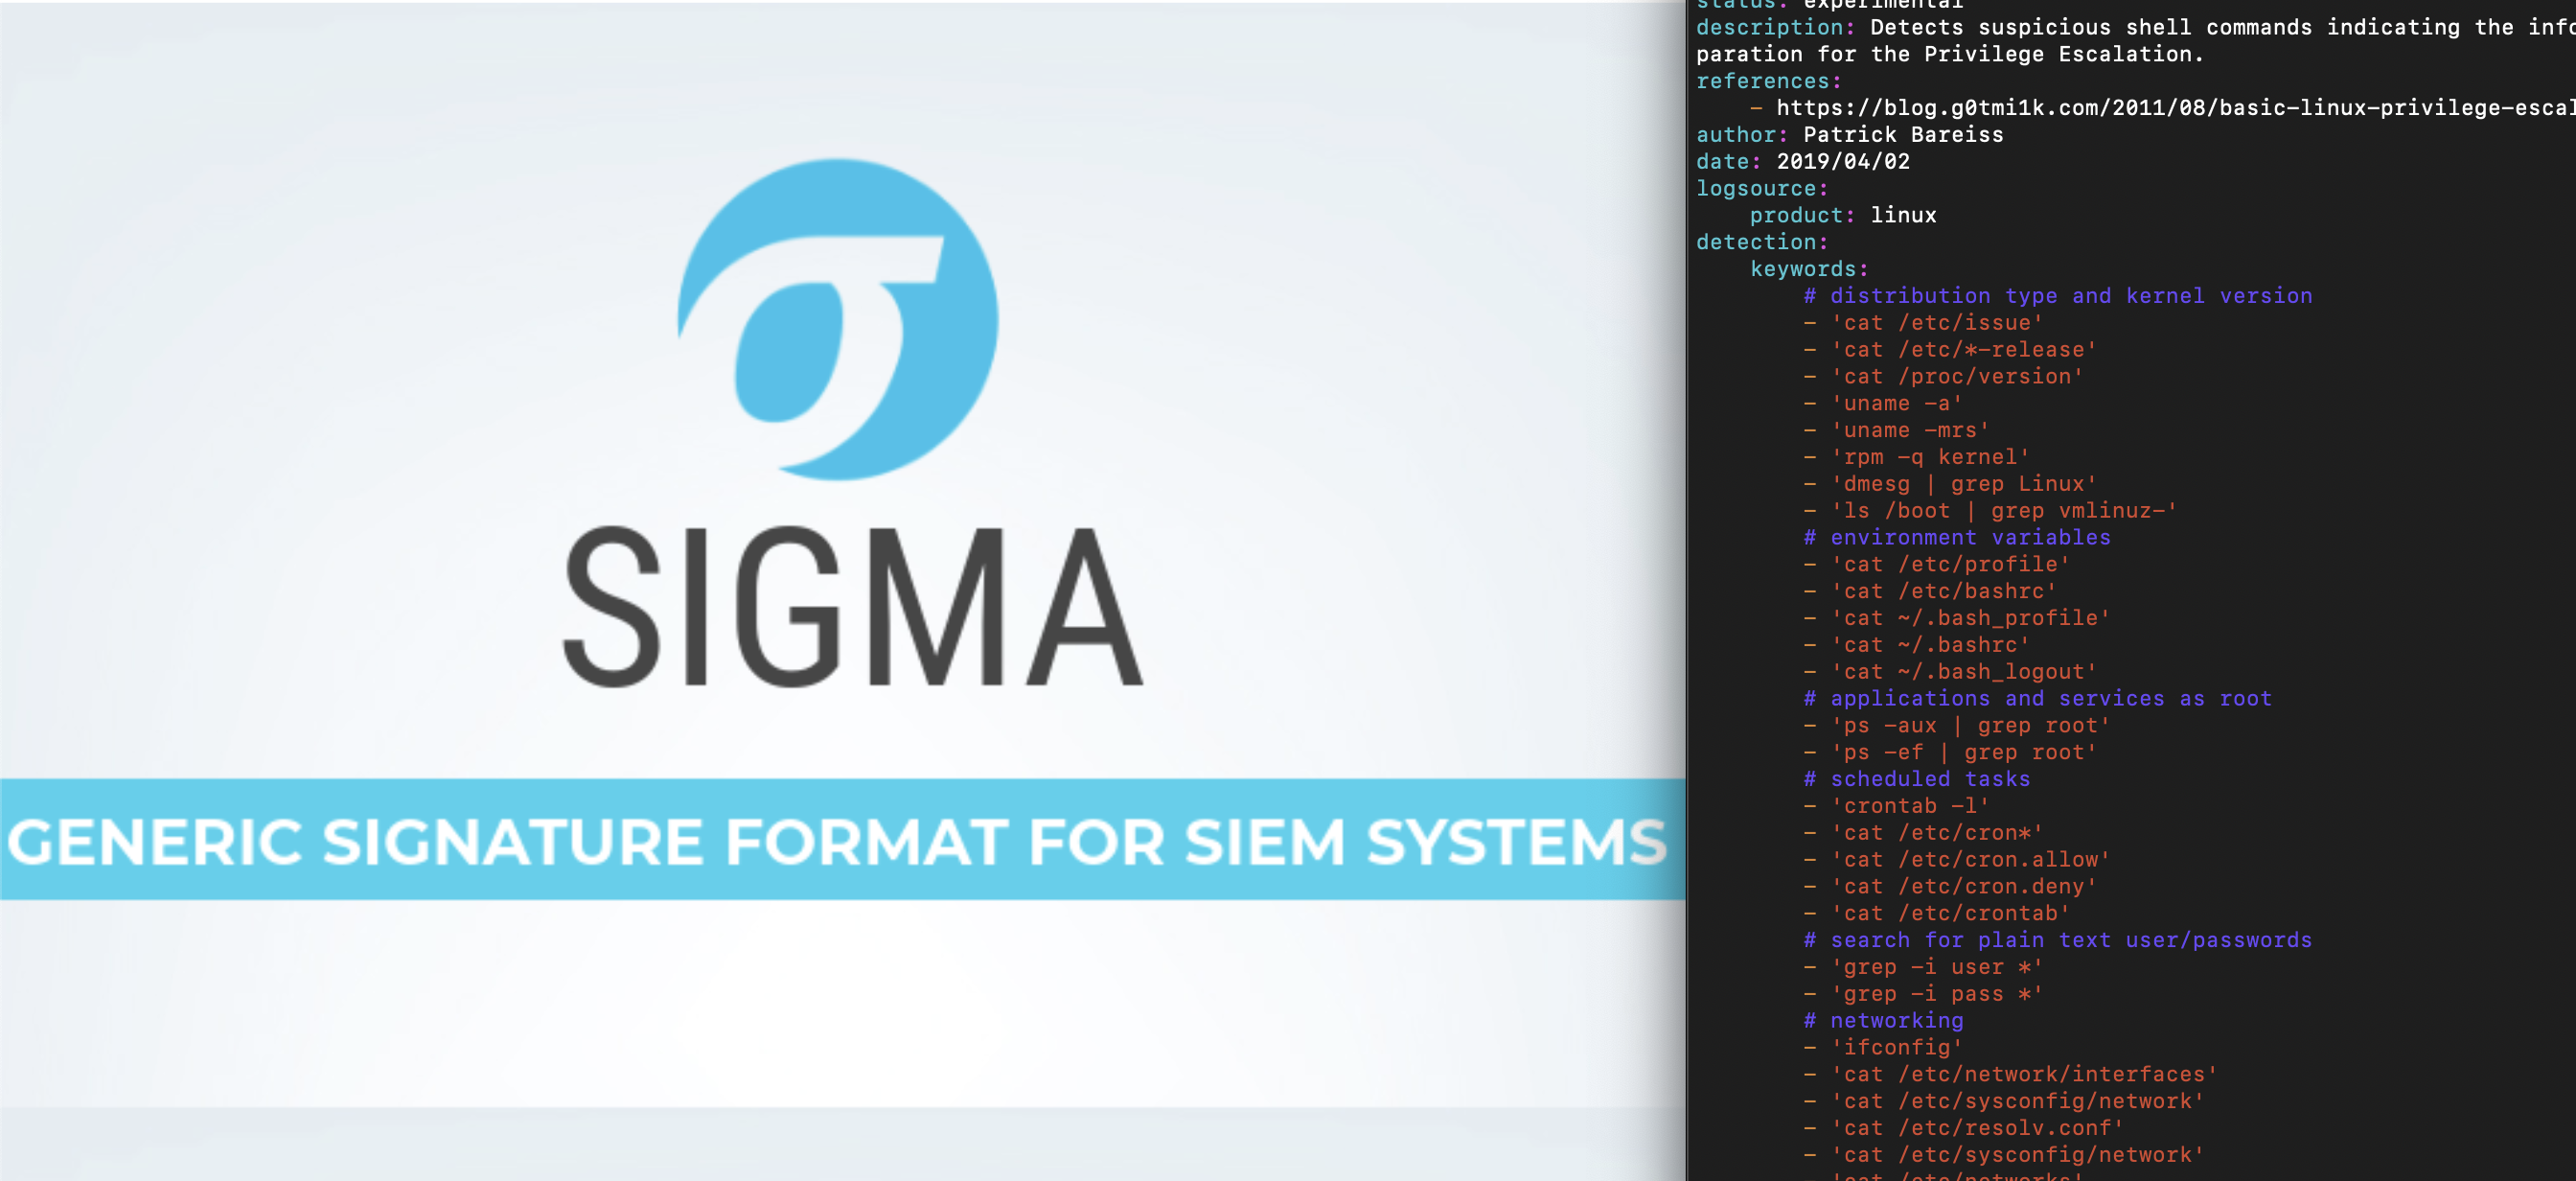 Detect Privilege Escalation Preparation in Linux with Sigma